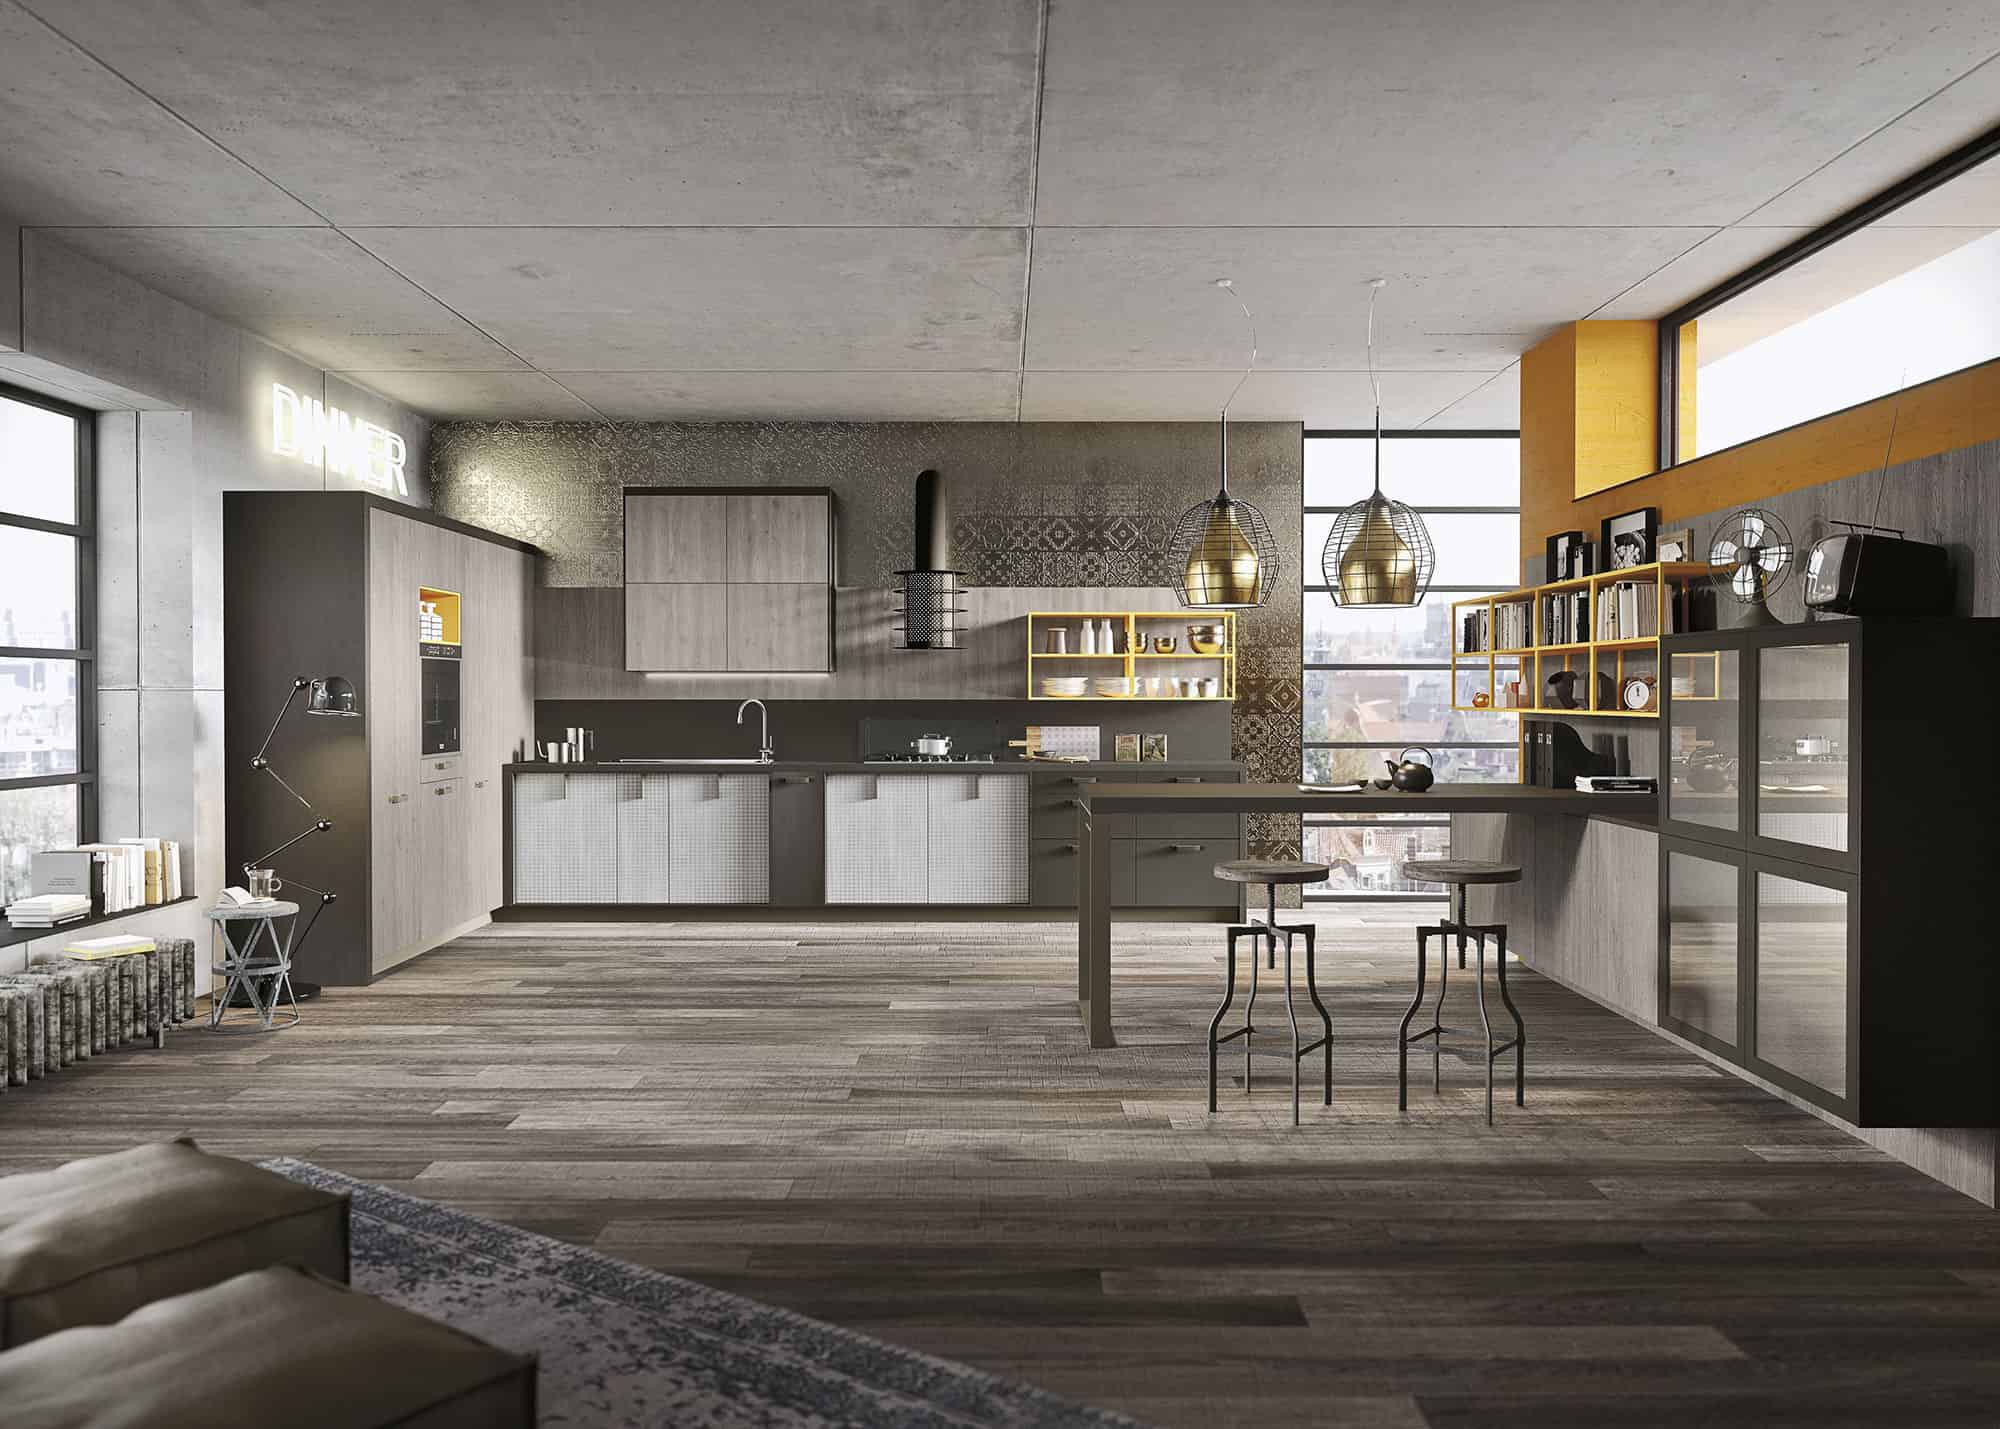 Loft Kitchen Ideas Adorable Kitchen Design For Lofts 3 Urban Ideas From Snaidero